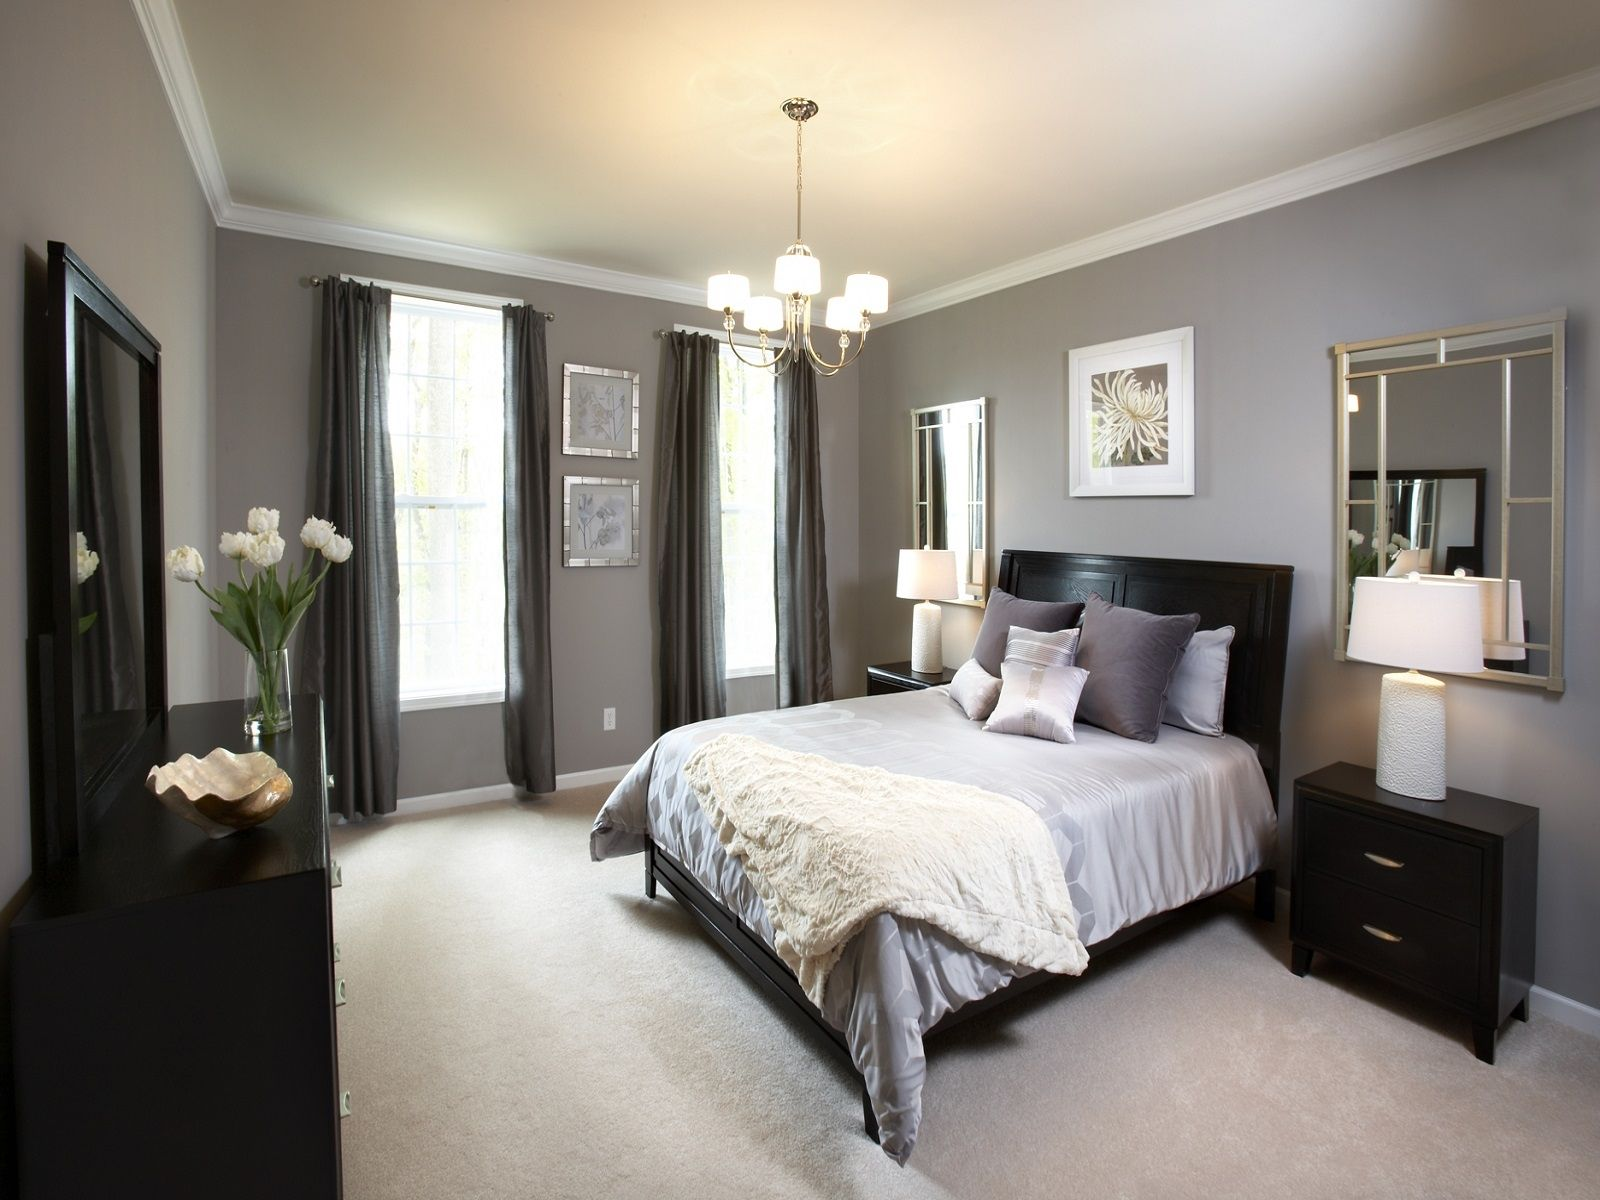 Bedside Mirrors Black Curtains Bedroom Master Grey With Gray Walls Dark